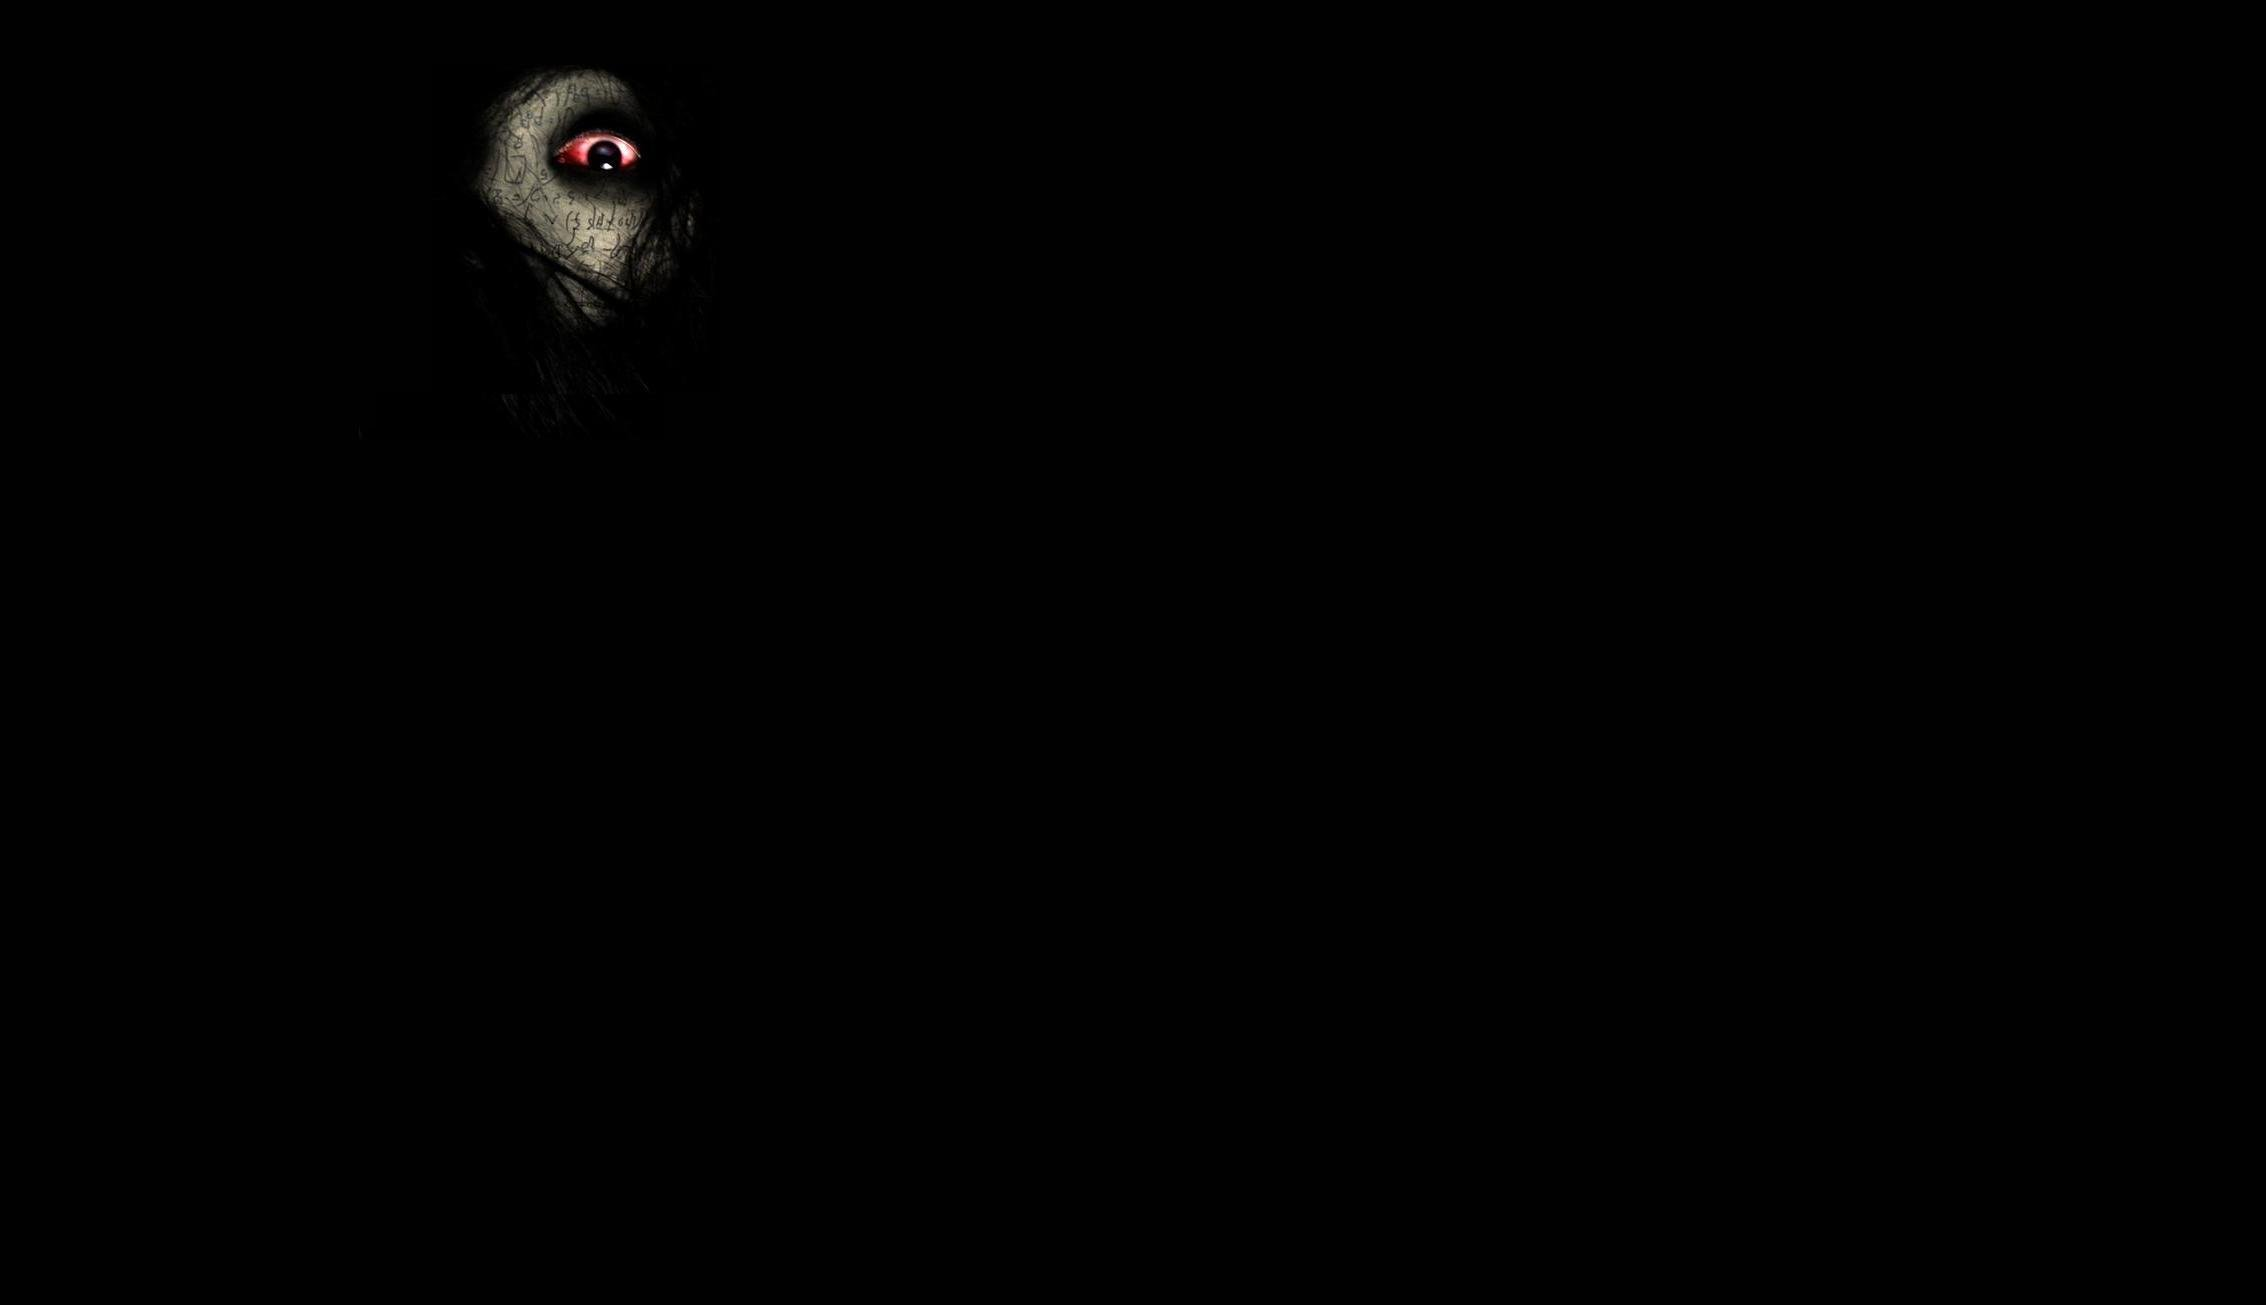 The Grudge Wallpaper